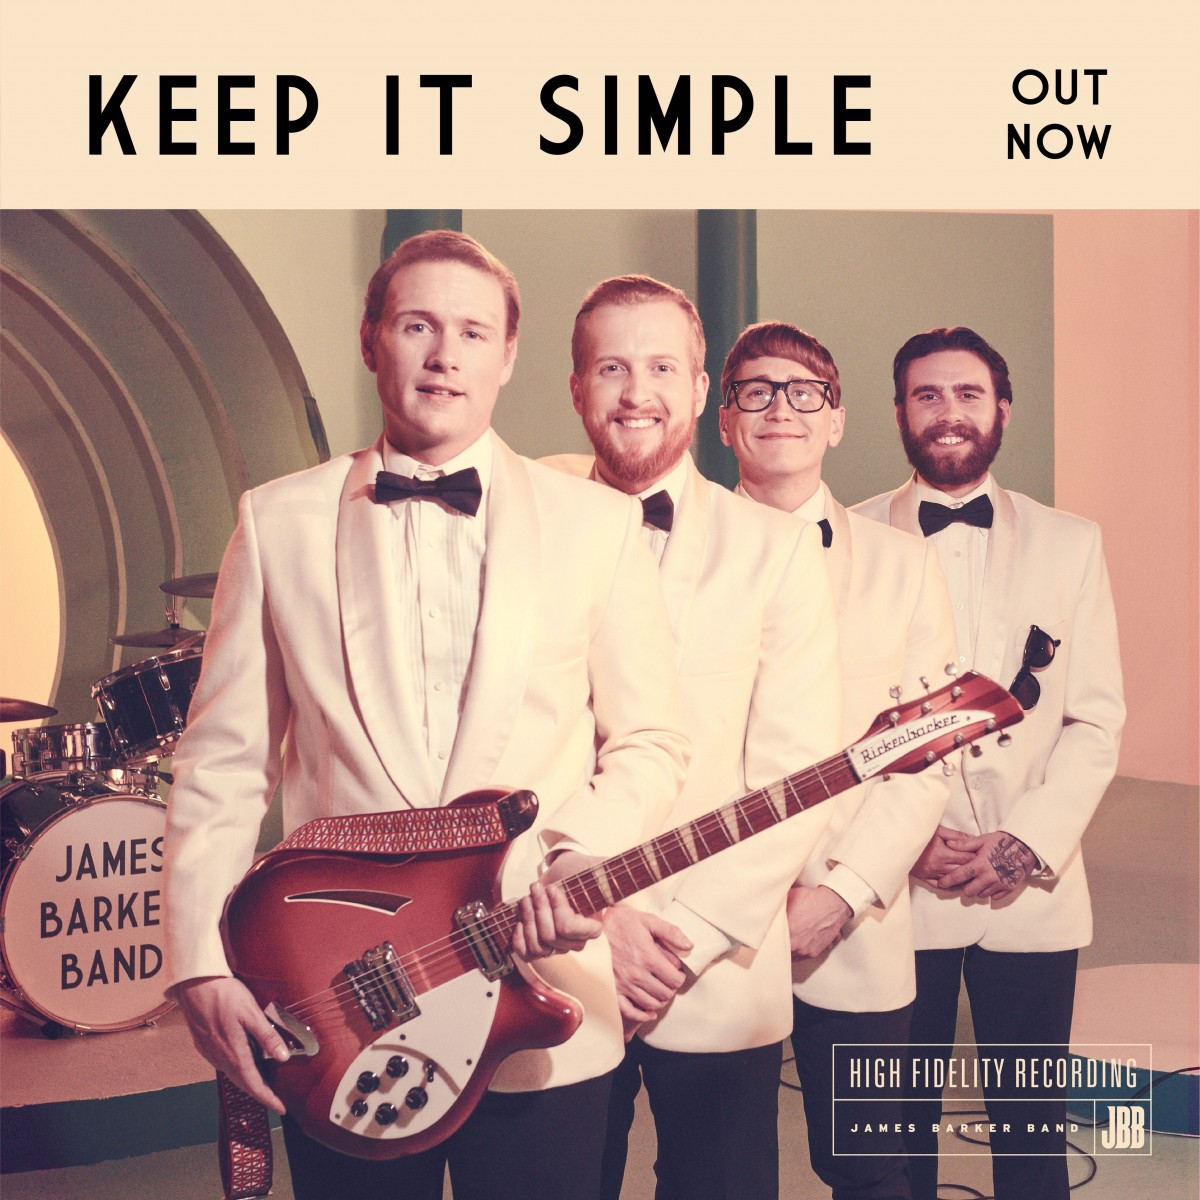 """James Barker Band Return with their New Single """"Keep It Simple"""""""